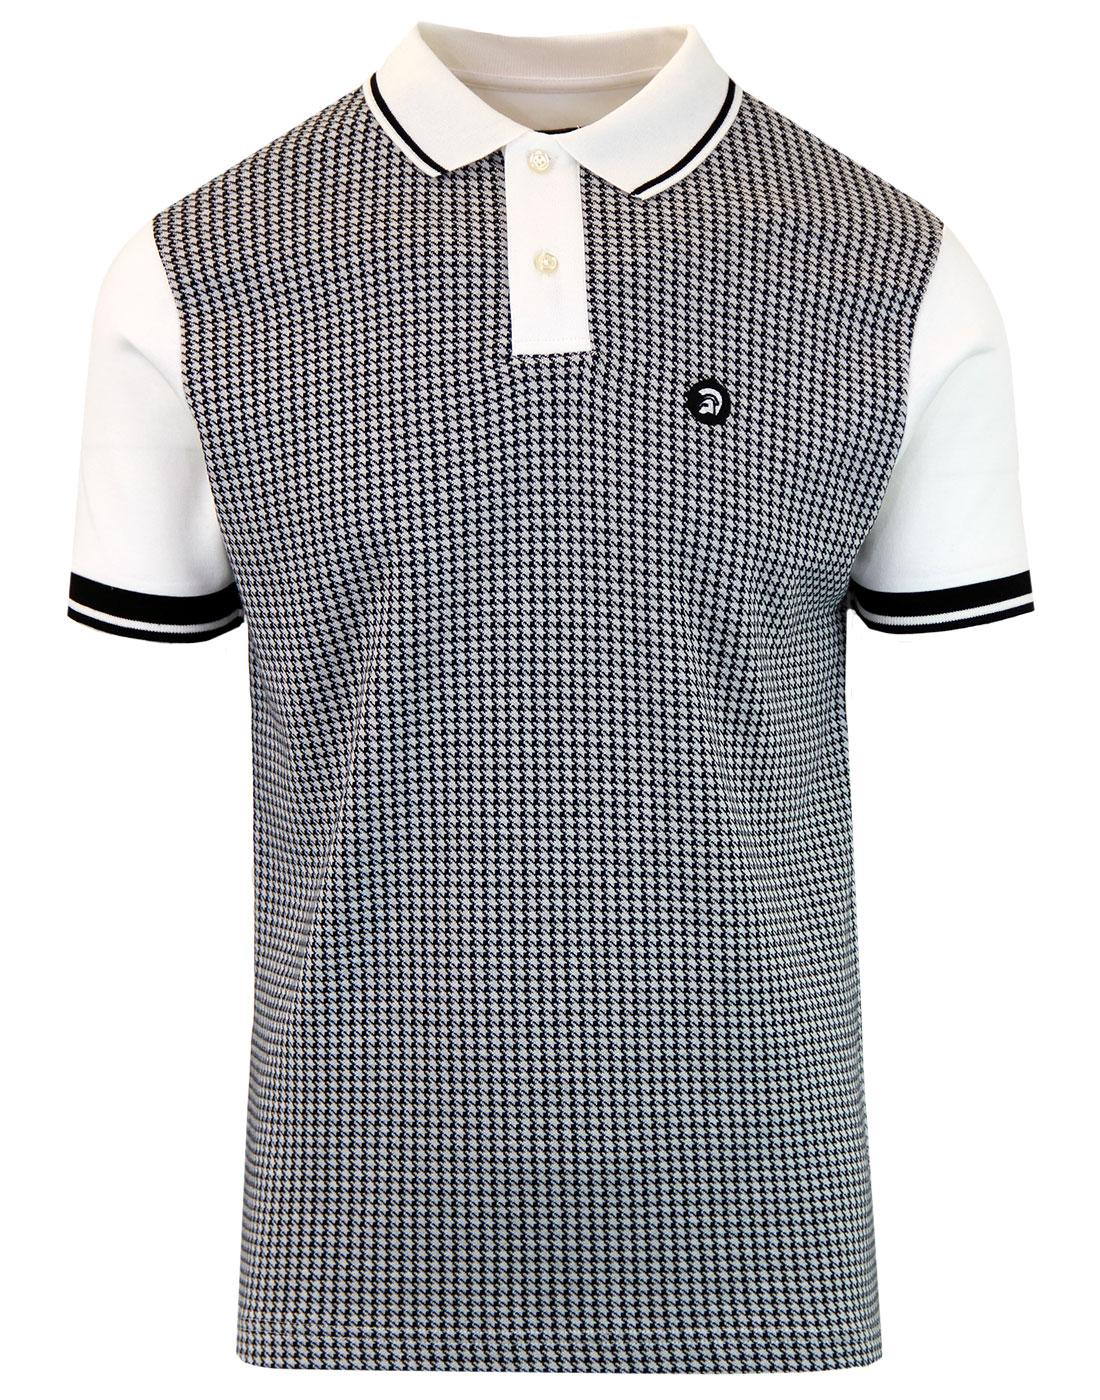 TROJAN RECORDS Mod Ska Dogtooth Tipped Polo Top E